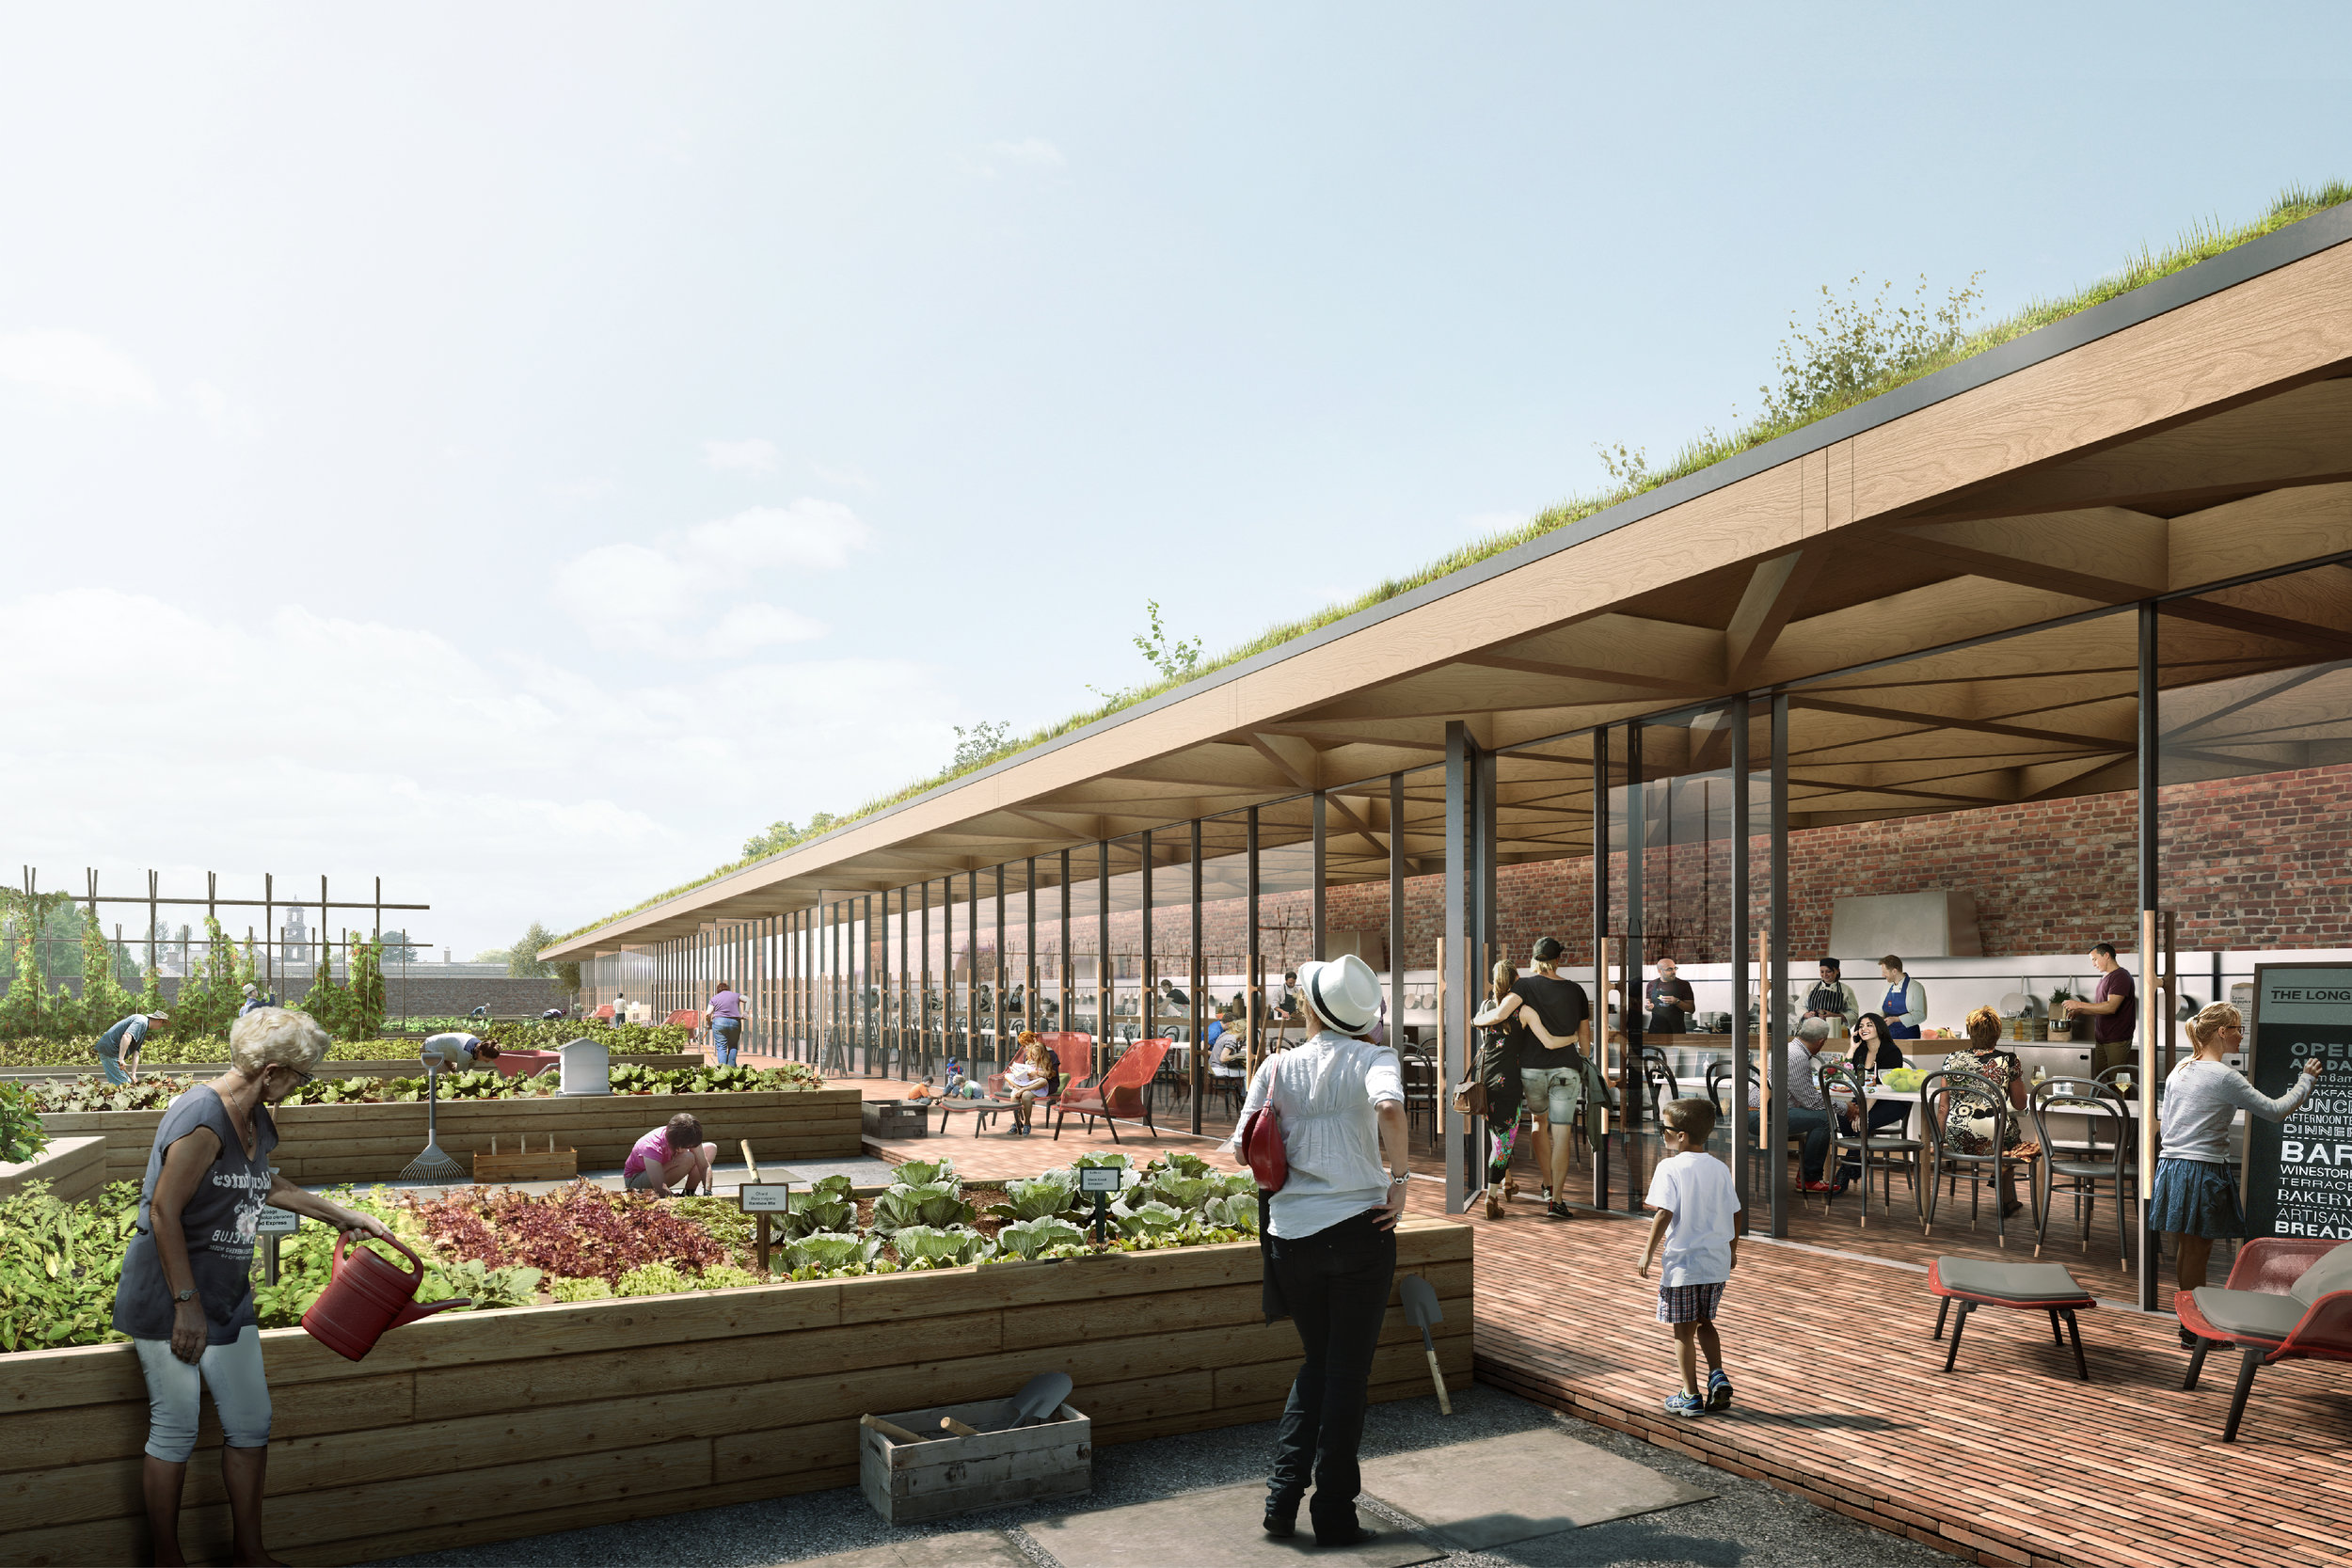 Proposal to create a cooking & gardening school within an abandoned walled garden